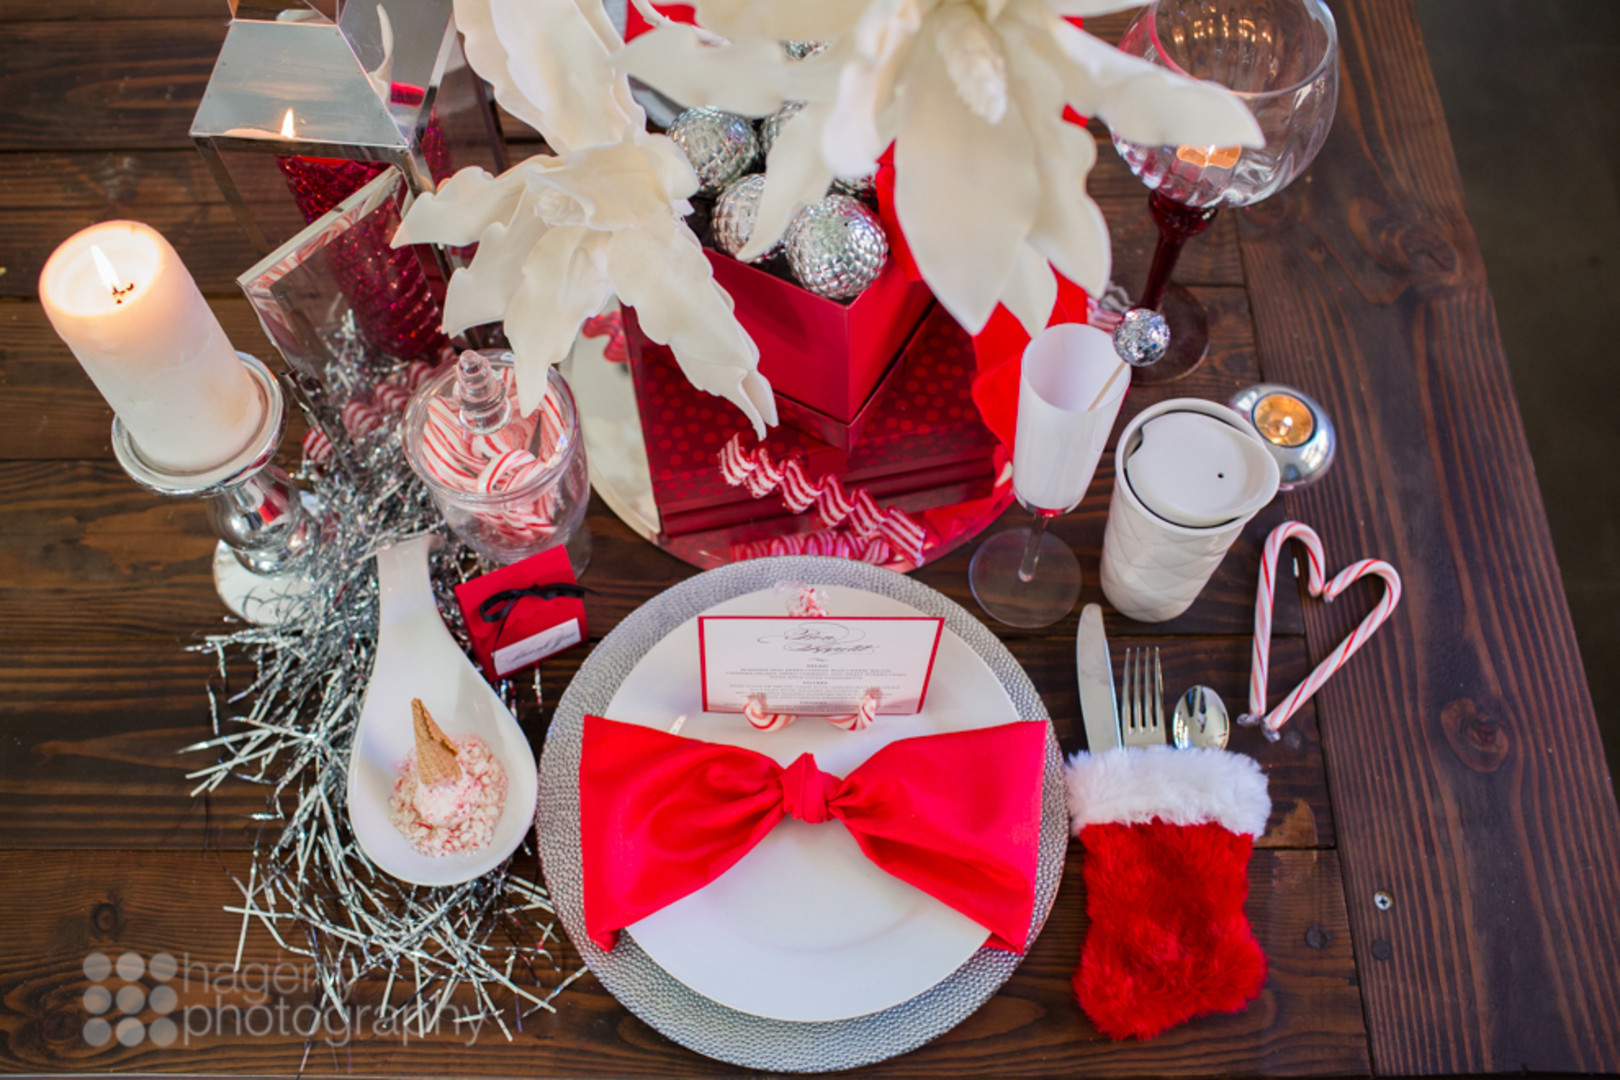 Christmas place setting ideas in red and white